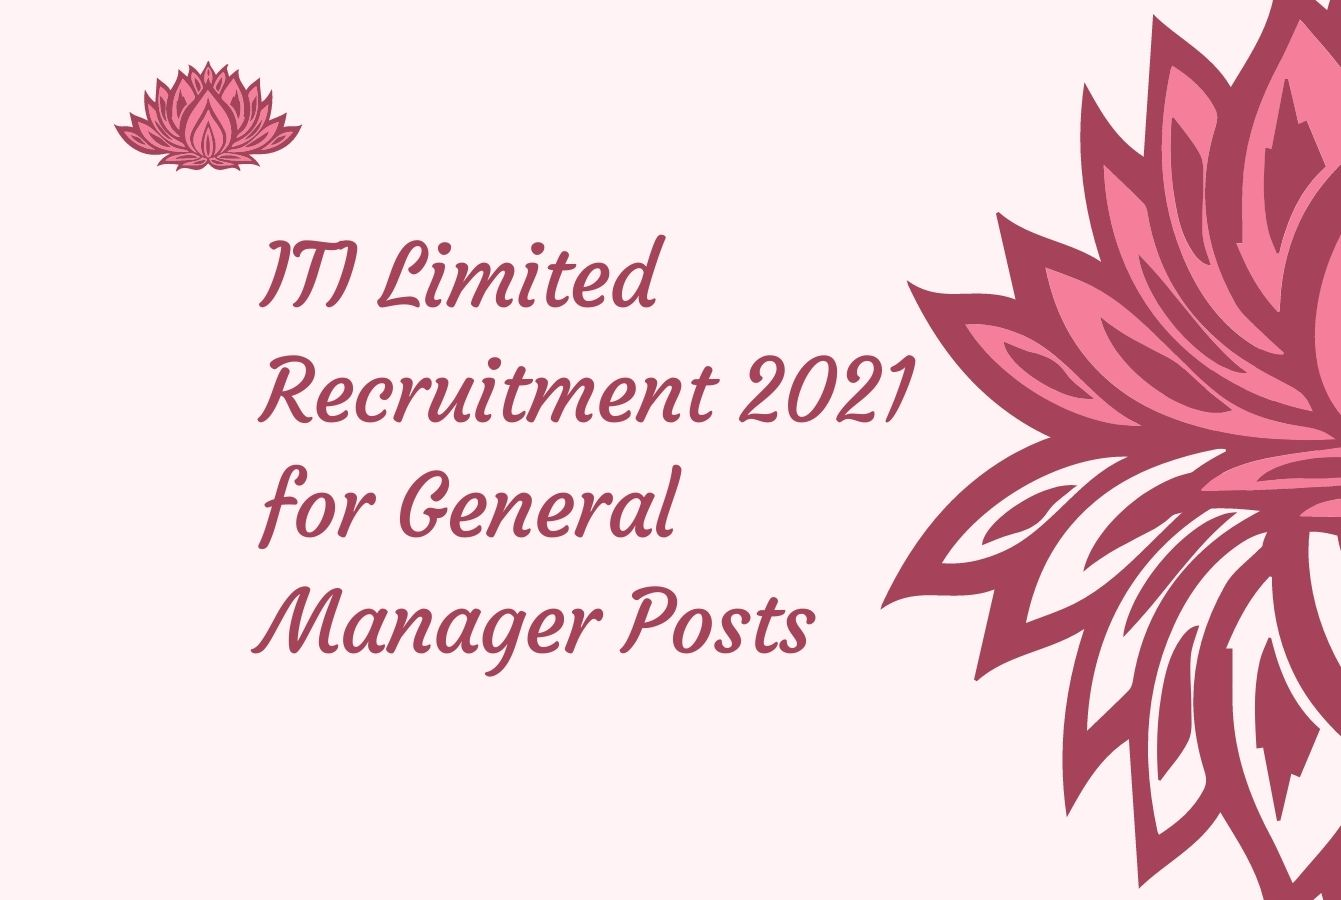 ITI Limited Recruitment 2021 for General Manager Posts